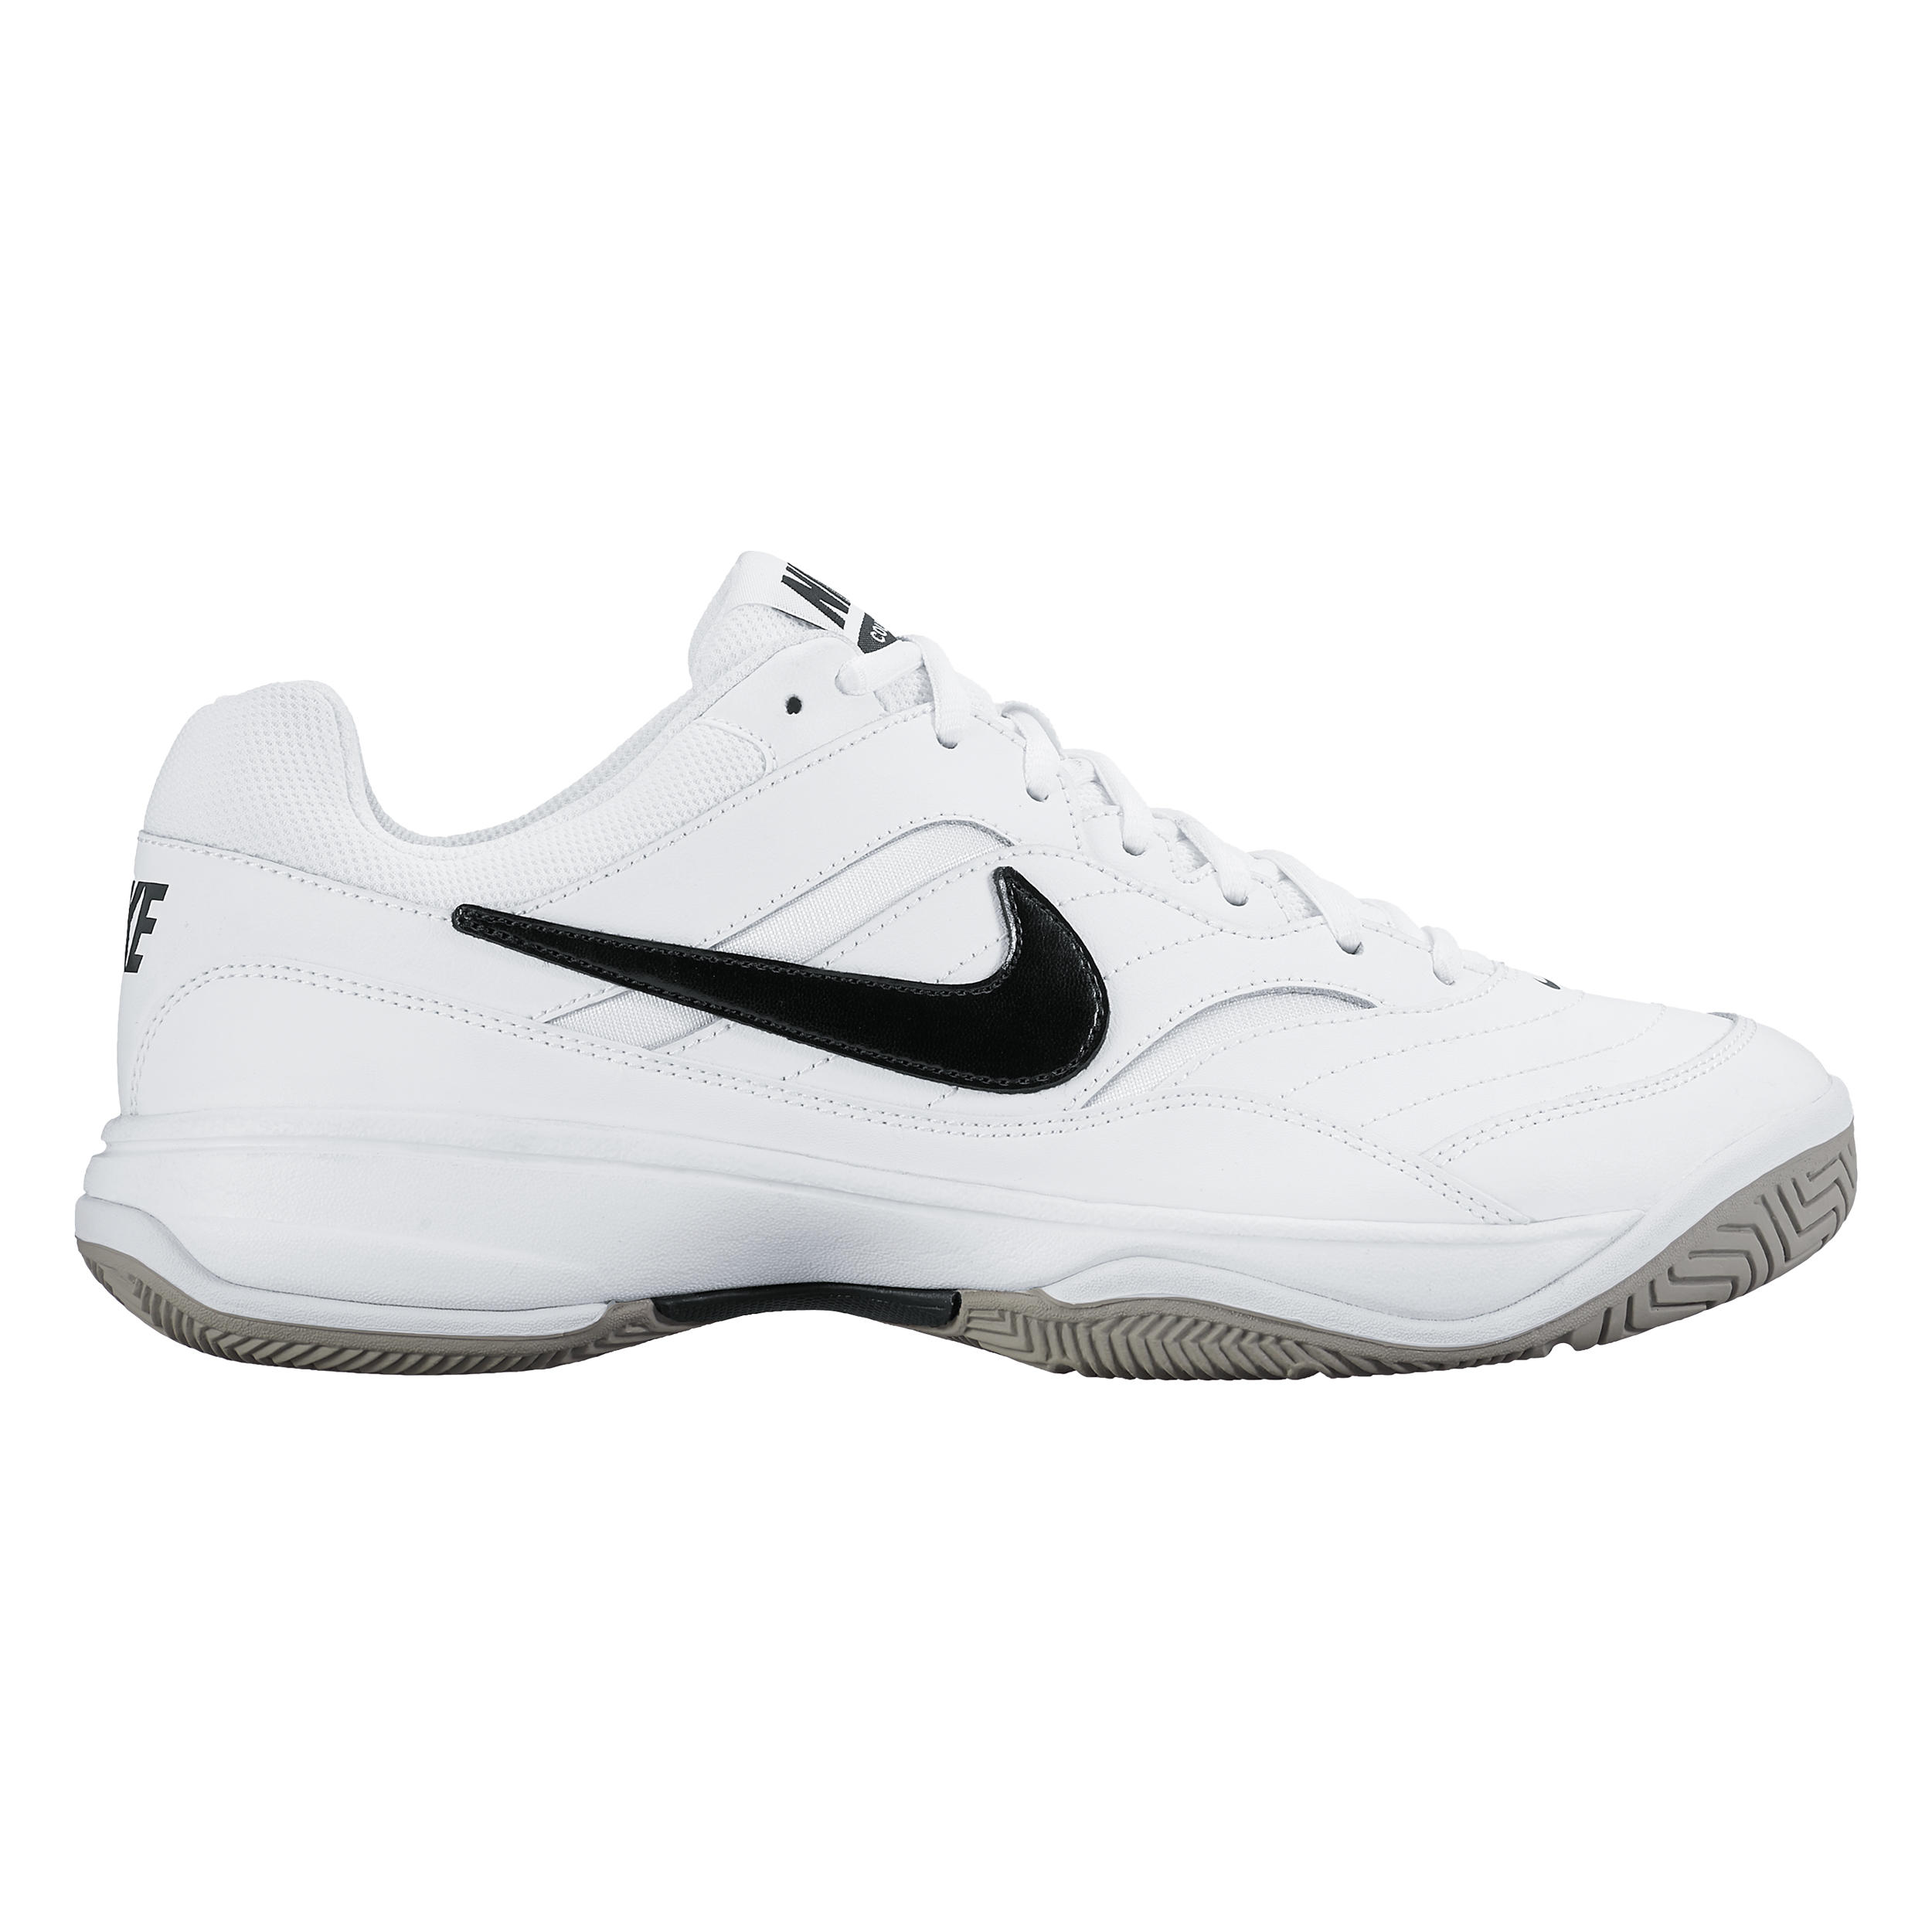 Nike Heren tennisschoenen Court Lite wit